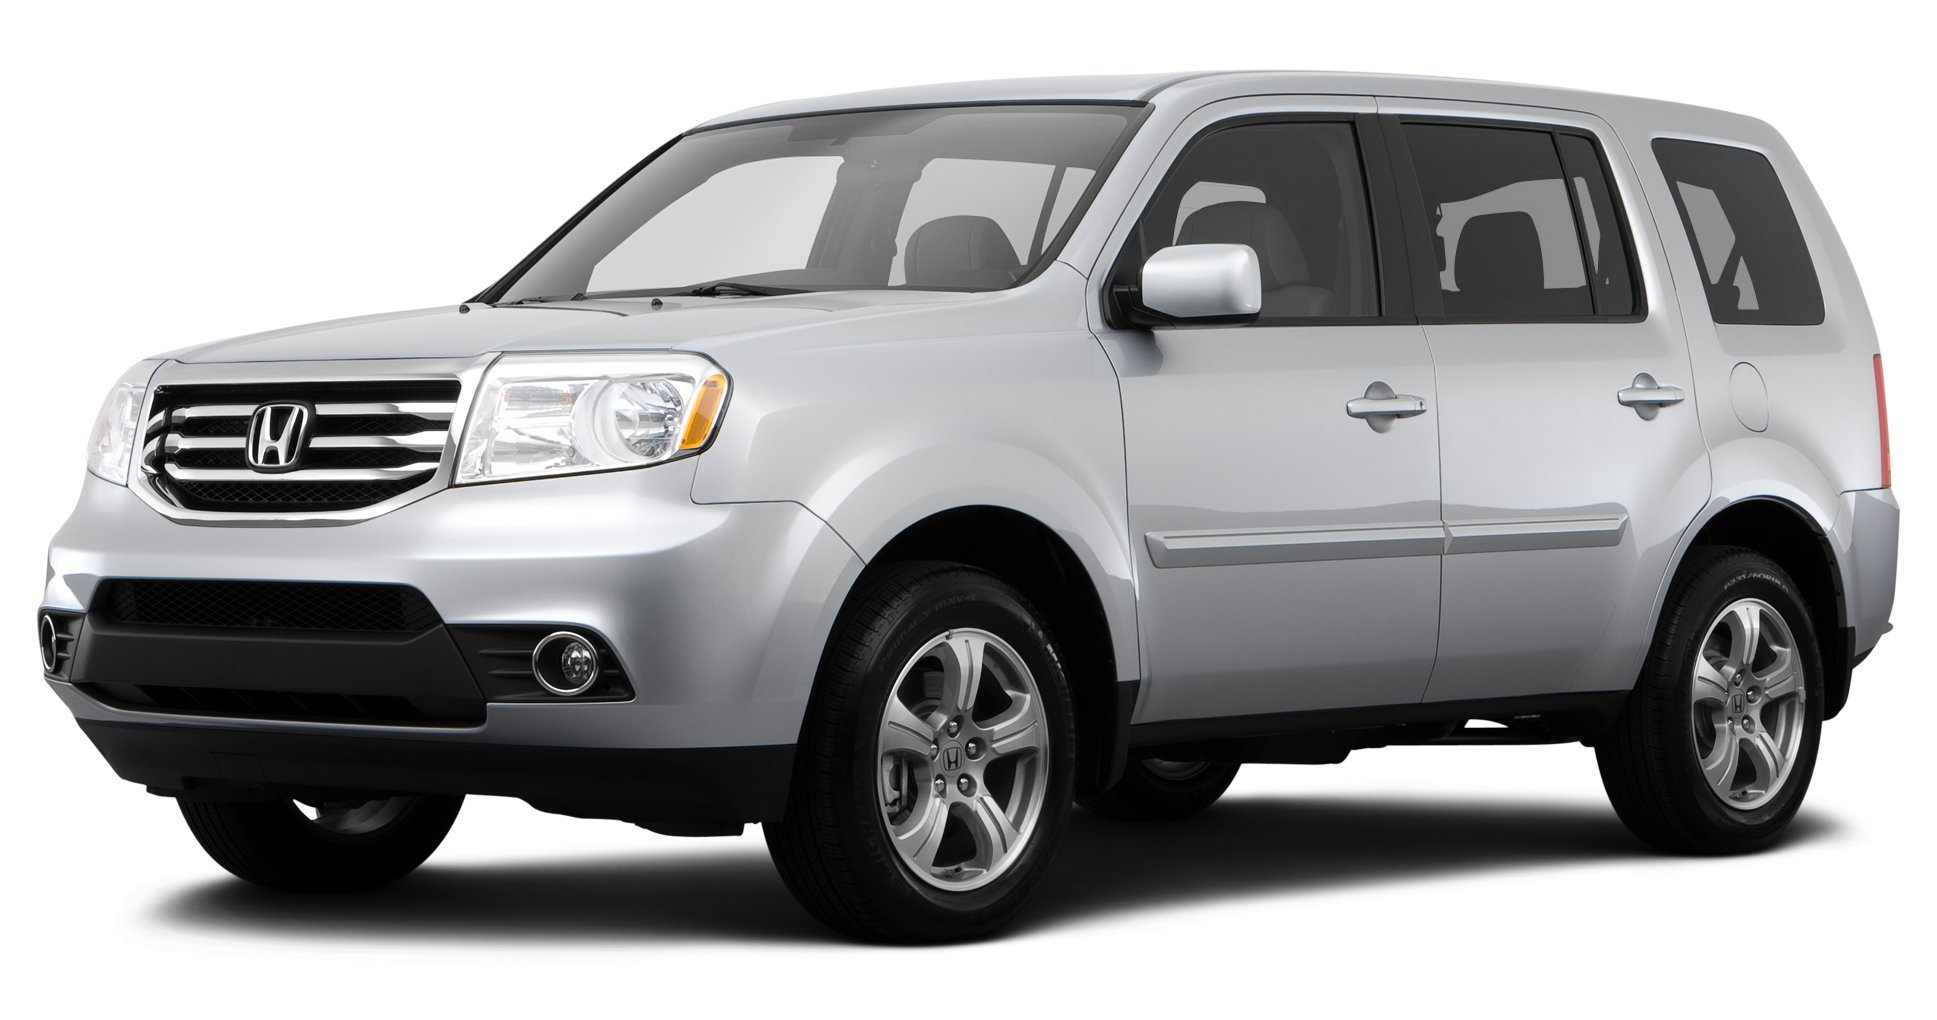 2014 honda pilot reviews images and specs vehicles. Black Bedroom Furniture Sets. Home Design Ideas